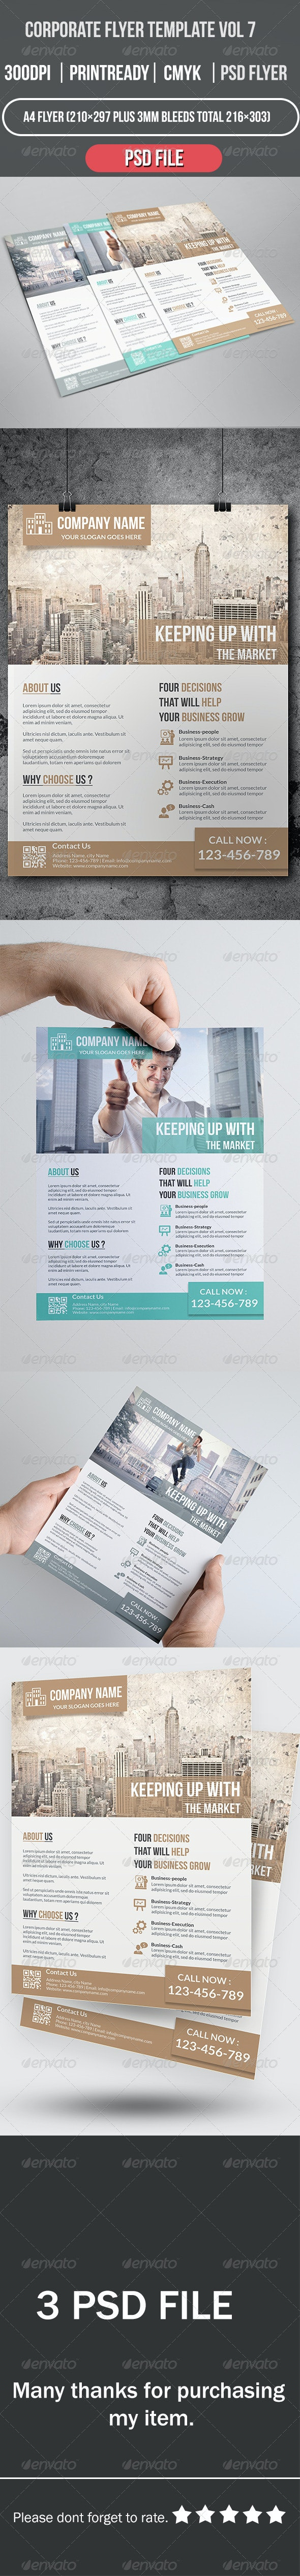 Corporate Flyer Template Vol 7 - Corporate Flyers